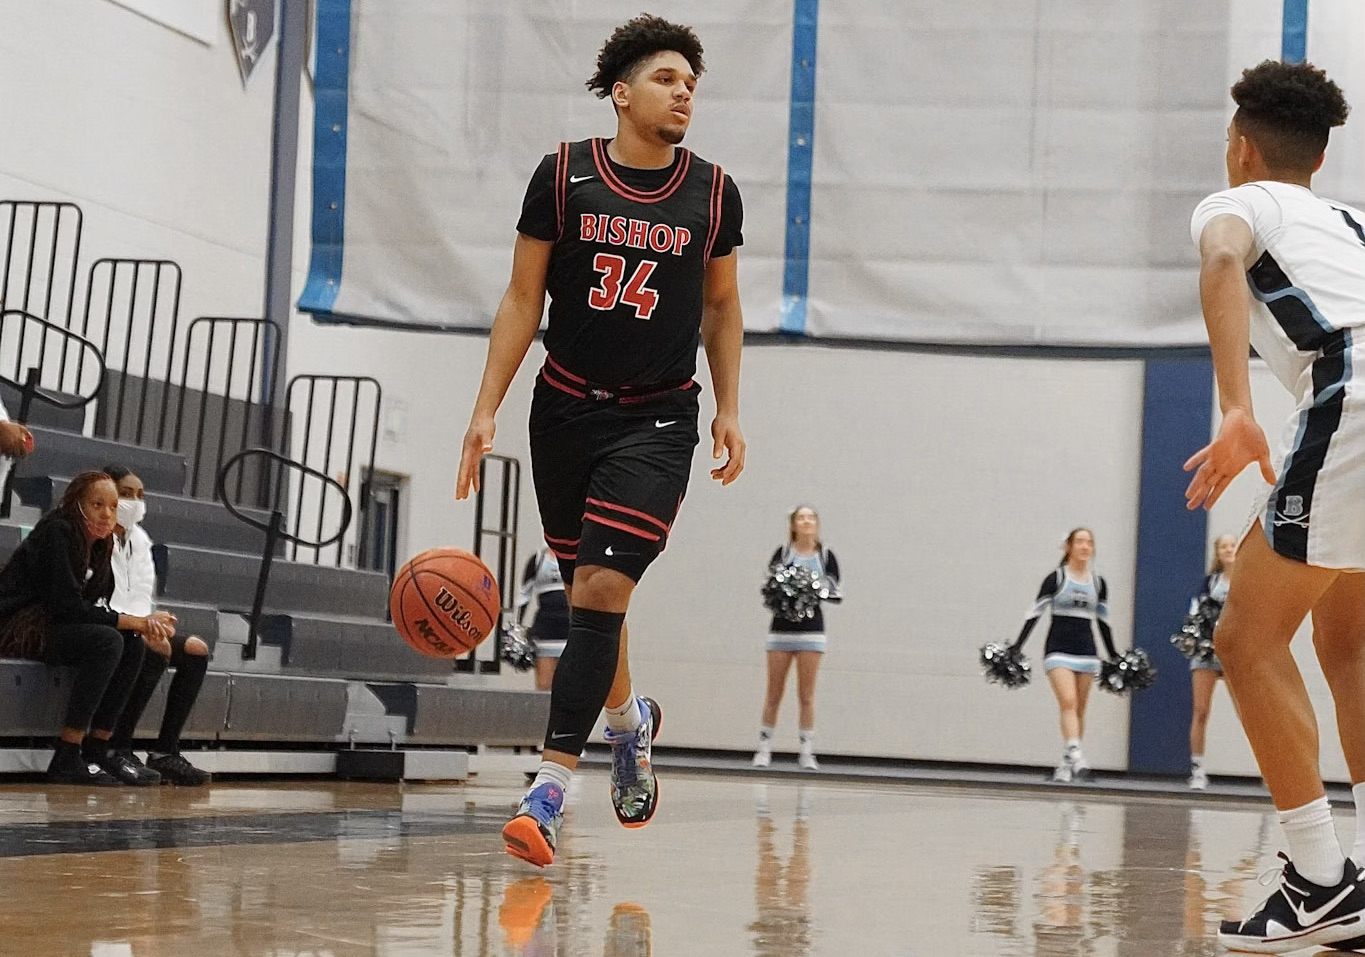 Emanuel Sharp, the nation's No. 8 shooting guard in the class of 2022, saw no reason for waiting to make his commitment to UH because he knew it was the perfect place for him. | Courtesy of Bishop McLaughlin Catholic High School and the Sharp family